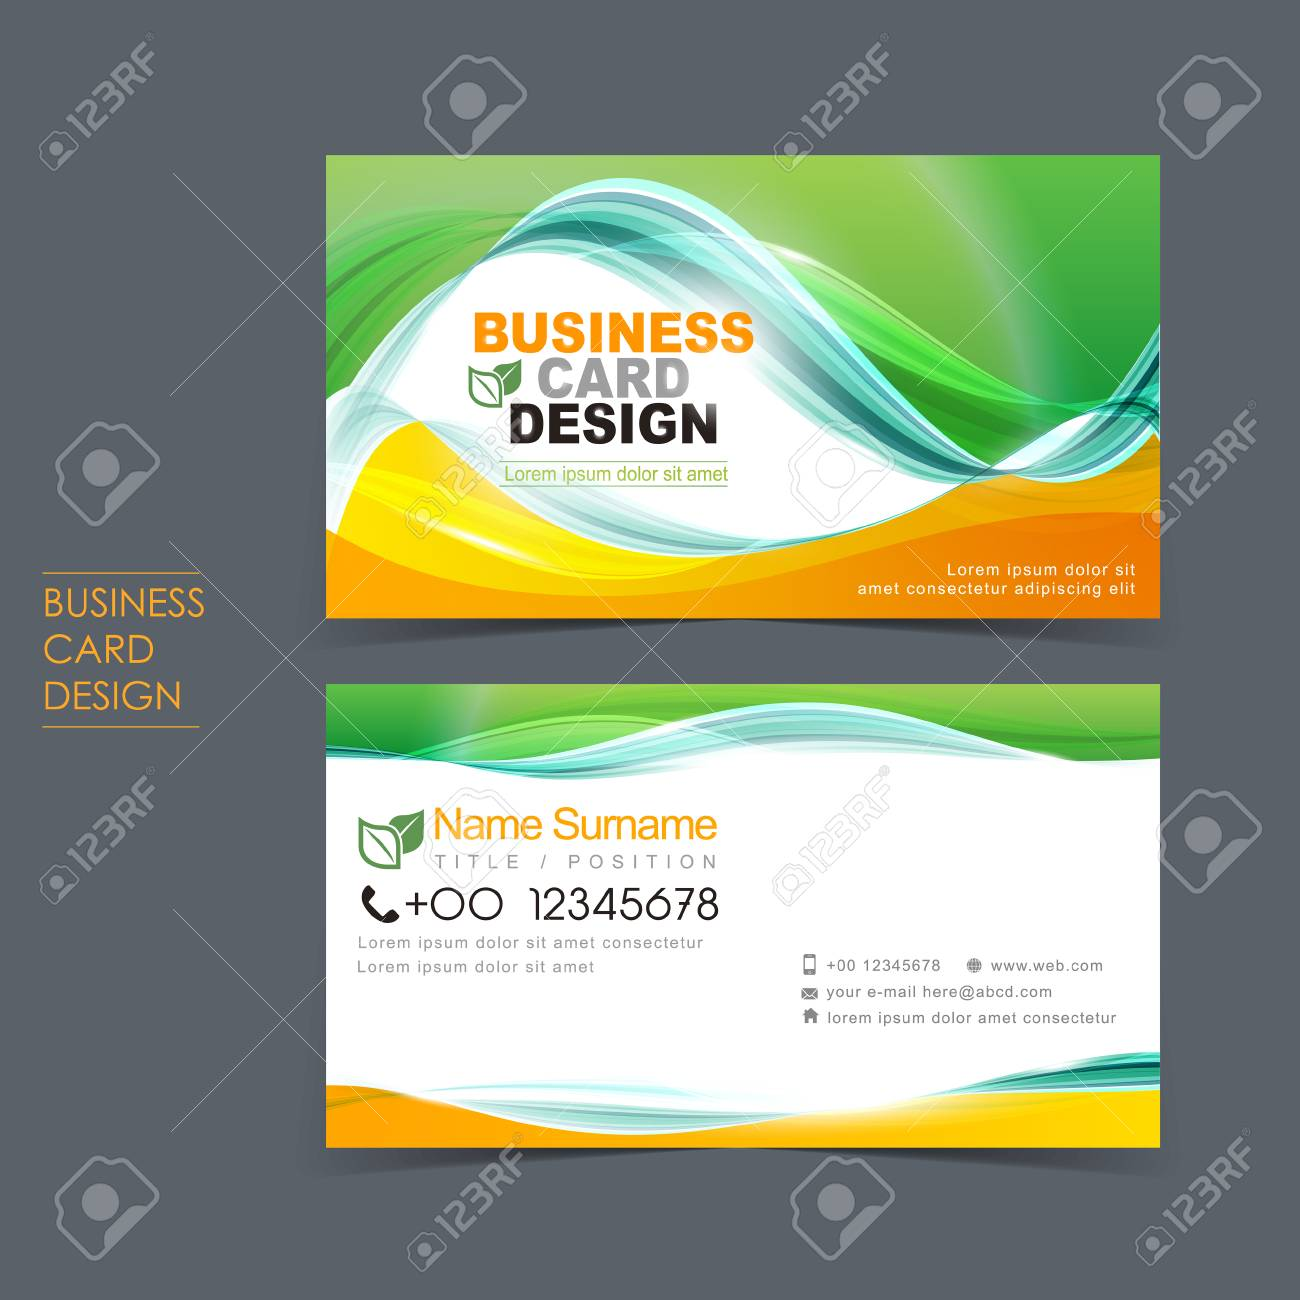 Professional vector business card set template design with green professional vector business card set template design with green and orange stock vector 29537178 cheaphphosting Choice Image